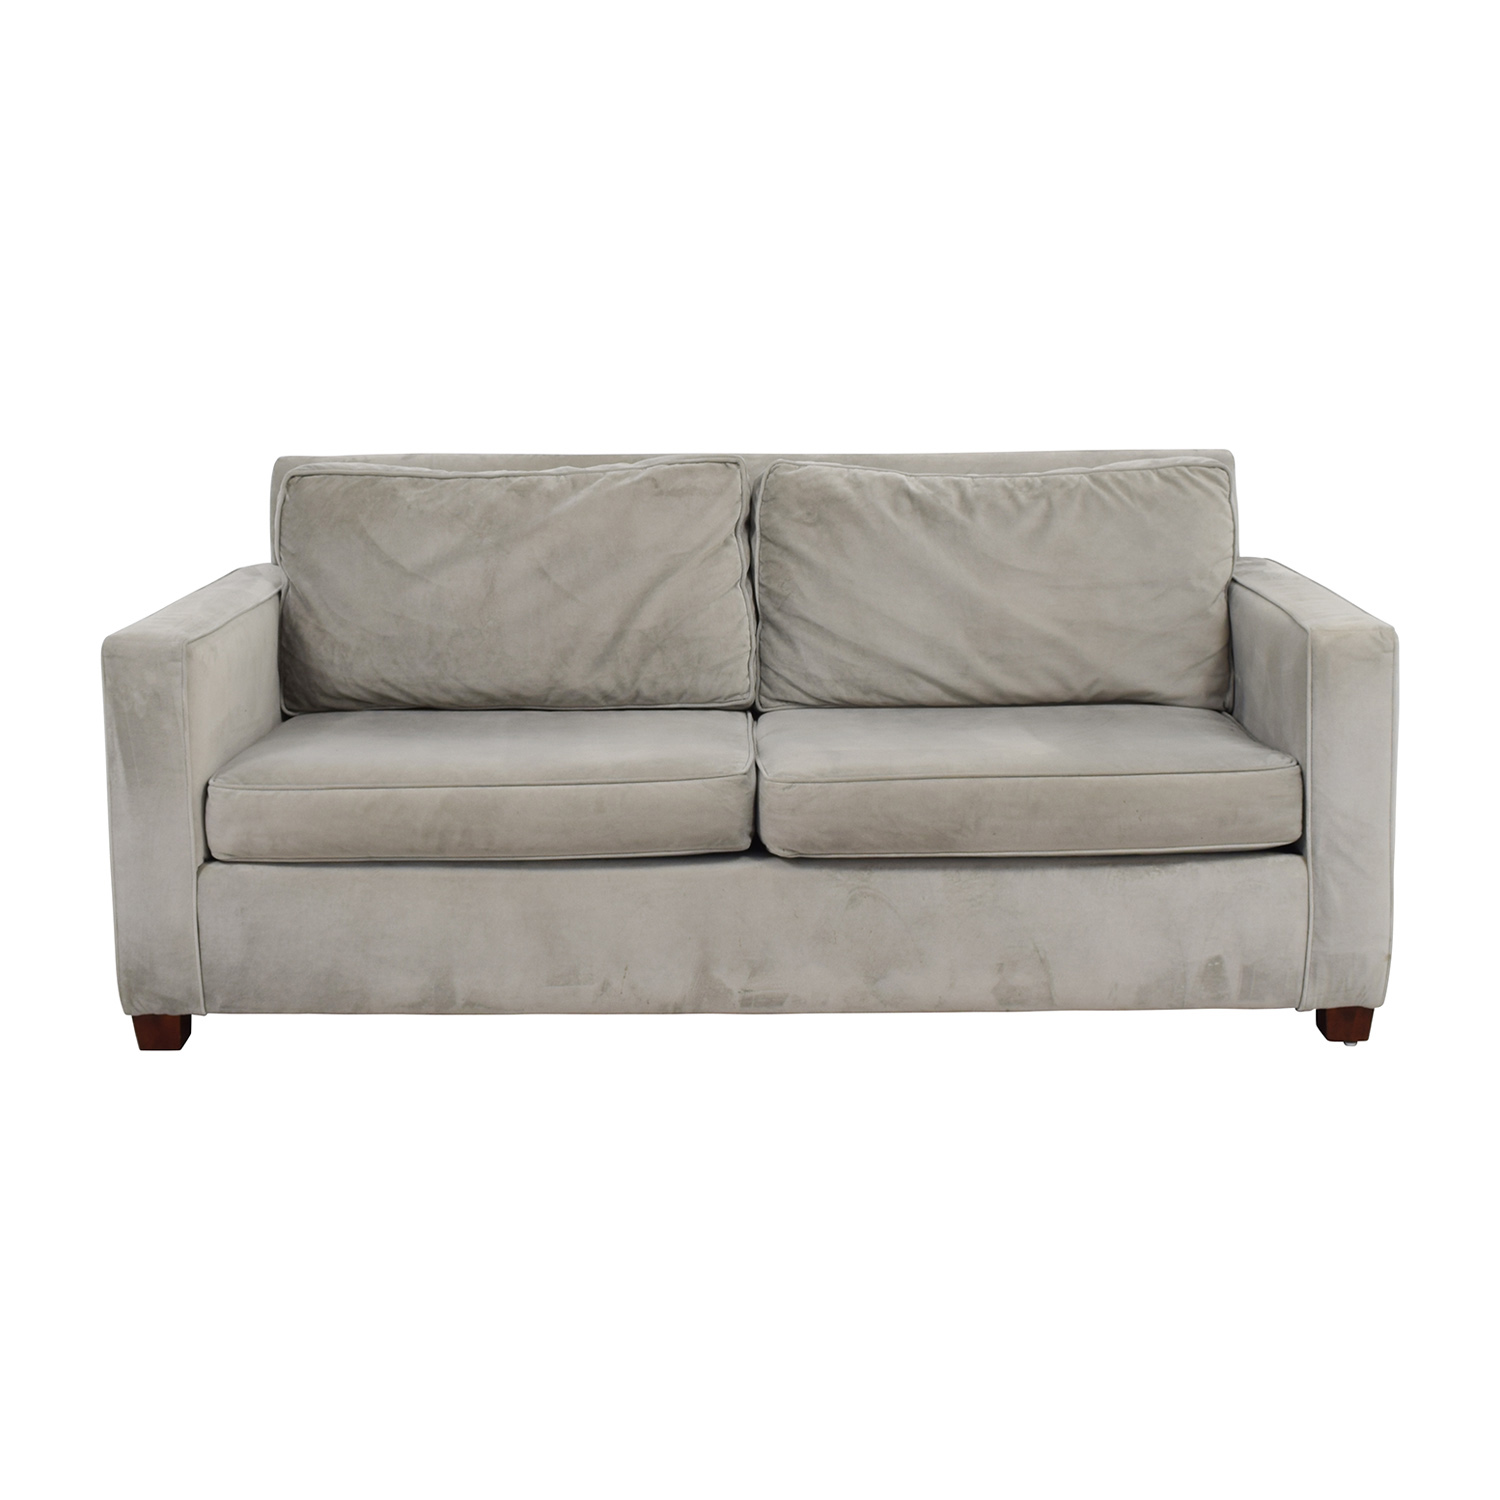 West Elm West Elm Henry Grey Couch on sale